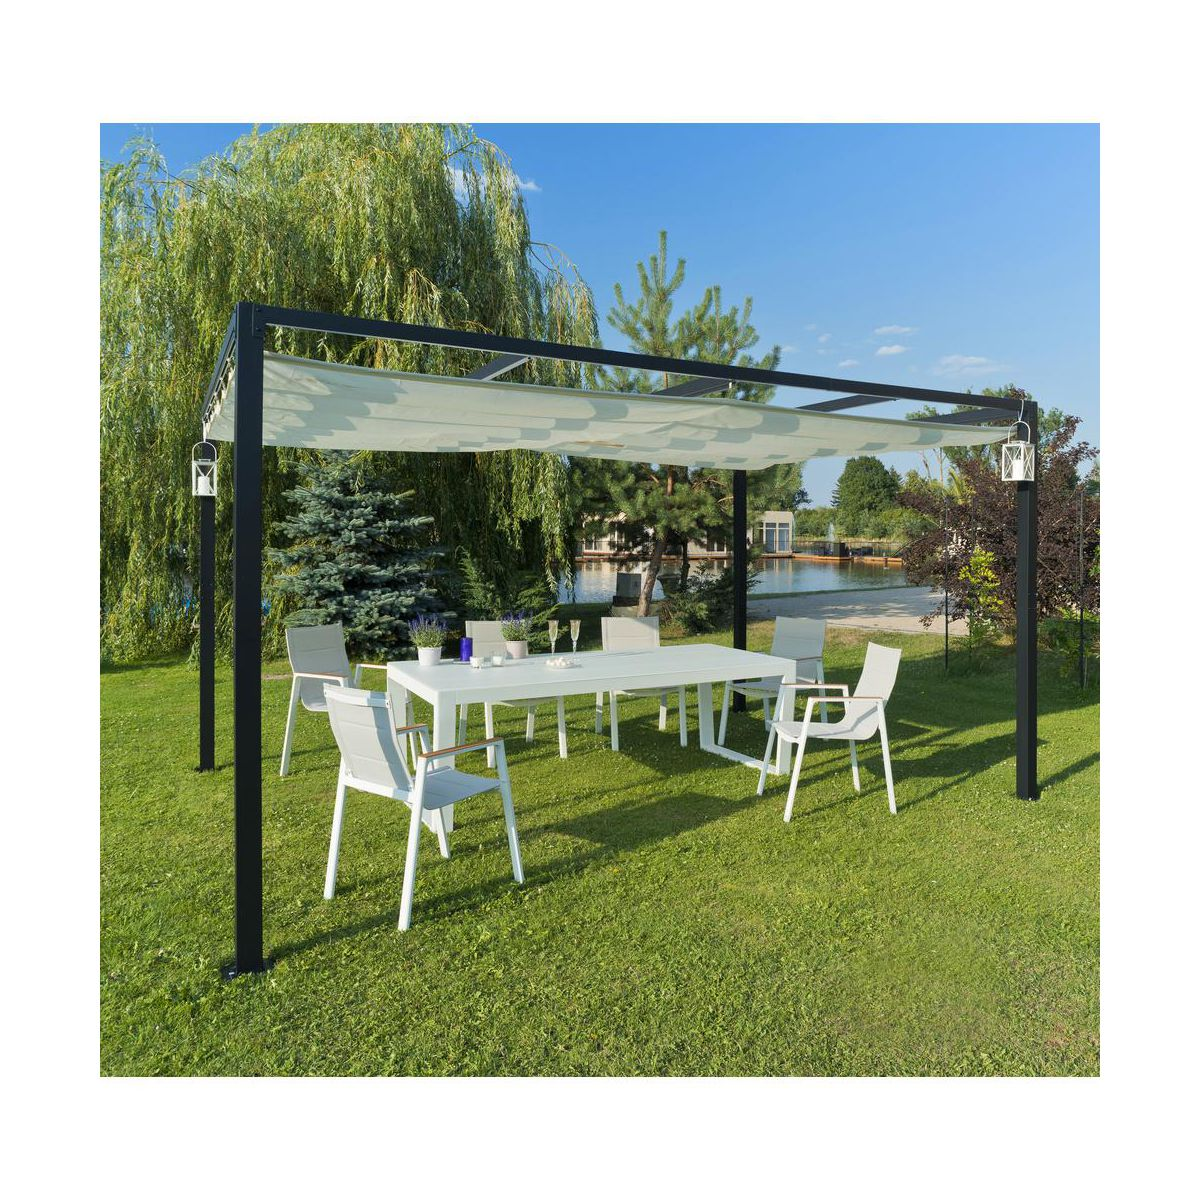 pergola aluminio 4x3 leroy merlin. Black Bedroom Furniture Sets. Home Design Ideas